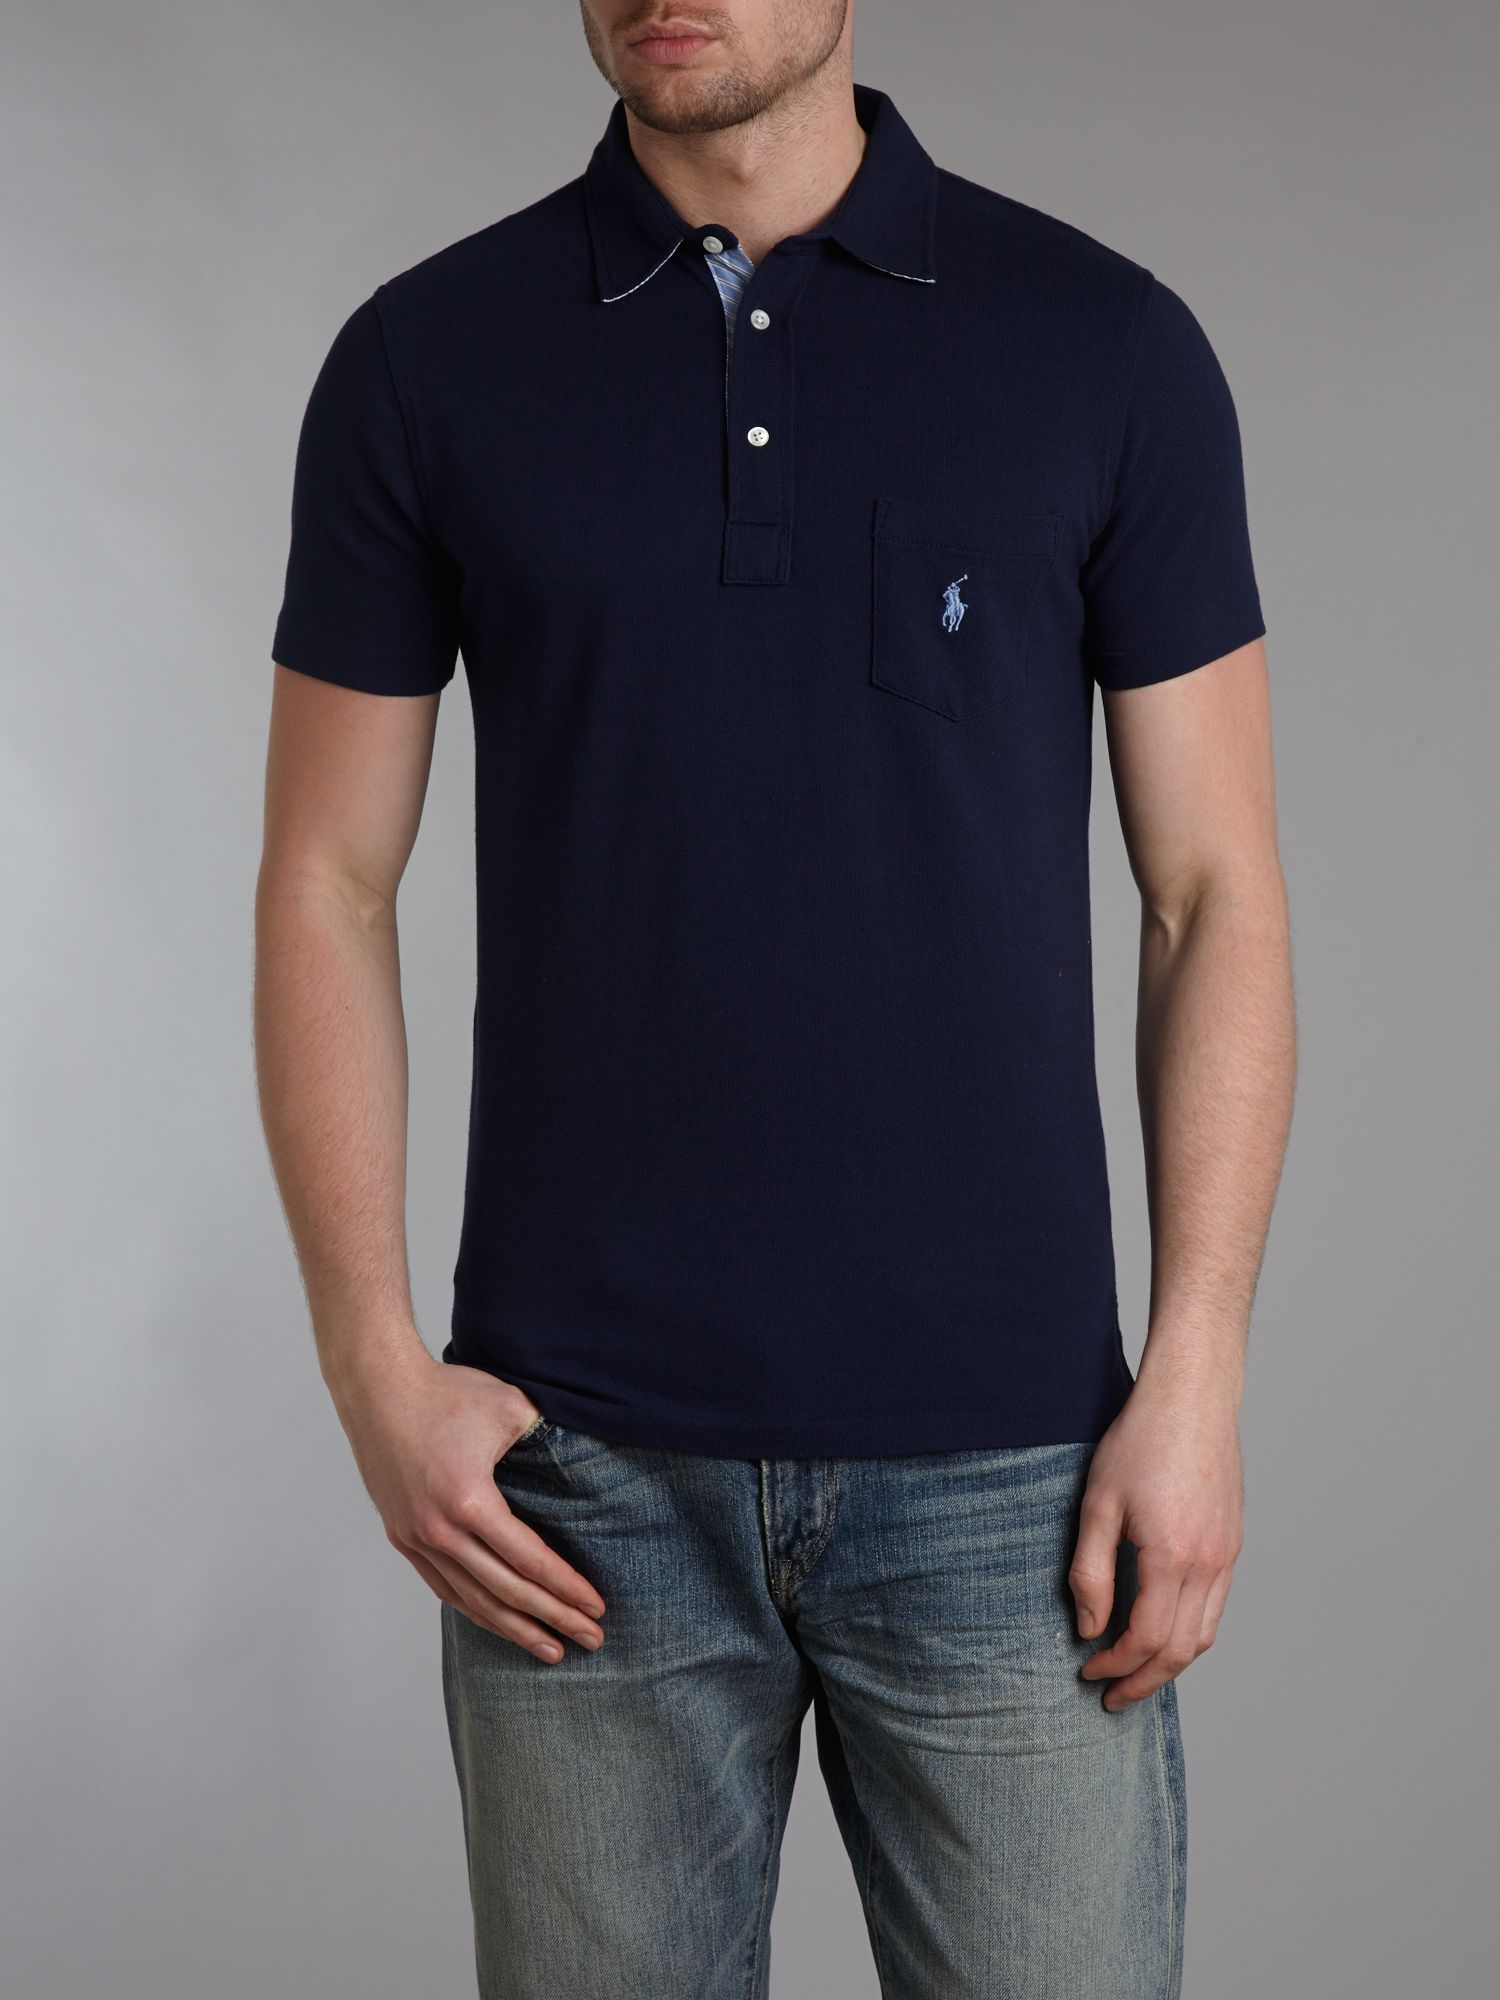 Custom fit woven polo